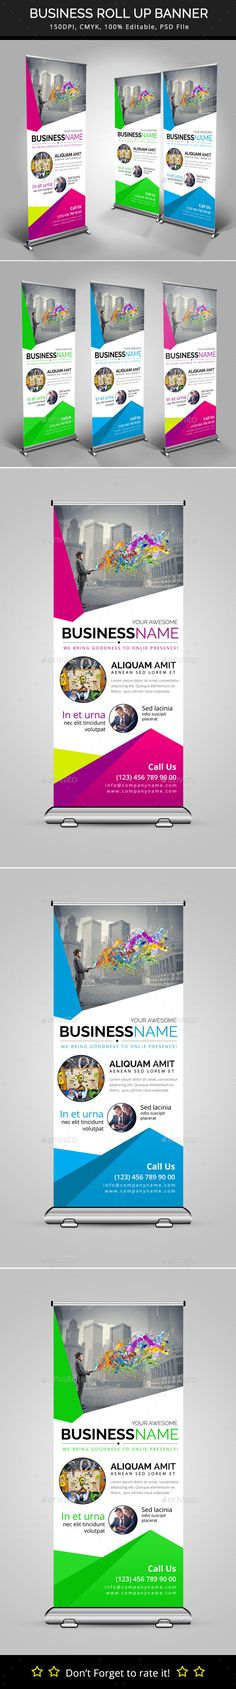 Business Roll Up Banner — Photoshop PSD #promotion #business templates • Available here → https://graphicriver.net/item/business-roll-up-banner/10088648?ref=pxcr